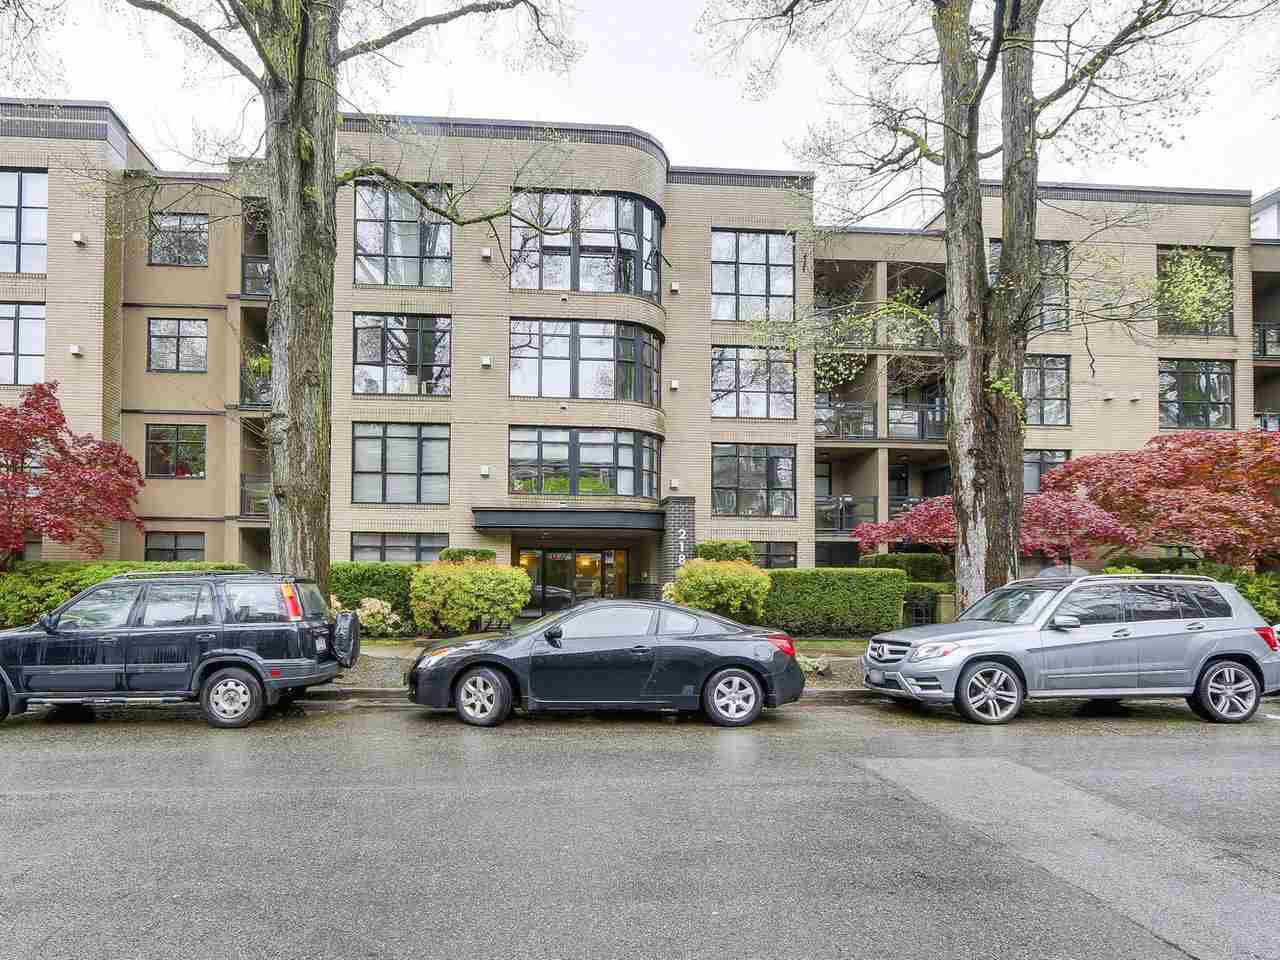 "Main Photo: 413 2181 W 10TH Avenue in Vancouver: Kitsilano Condo for sale in ""THE TENTH AVE"" (Vancouver West)  : MLS®# R2163577"